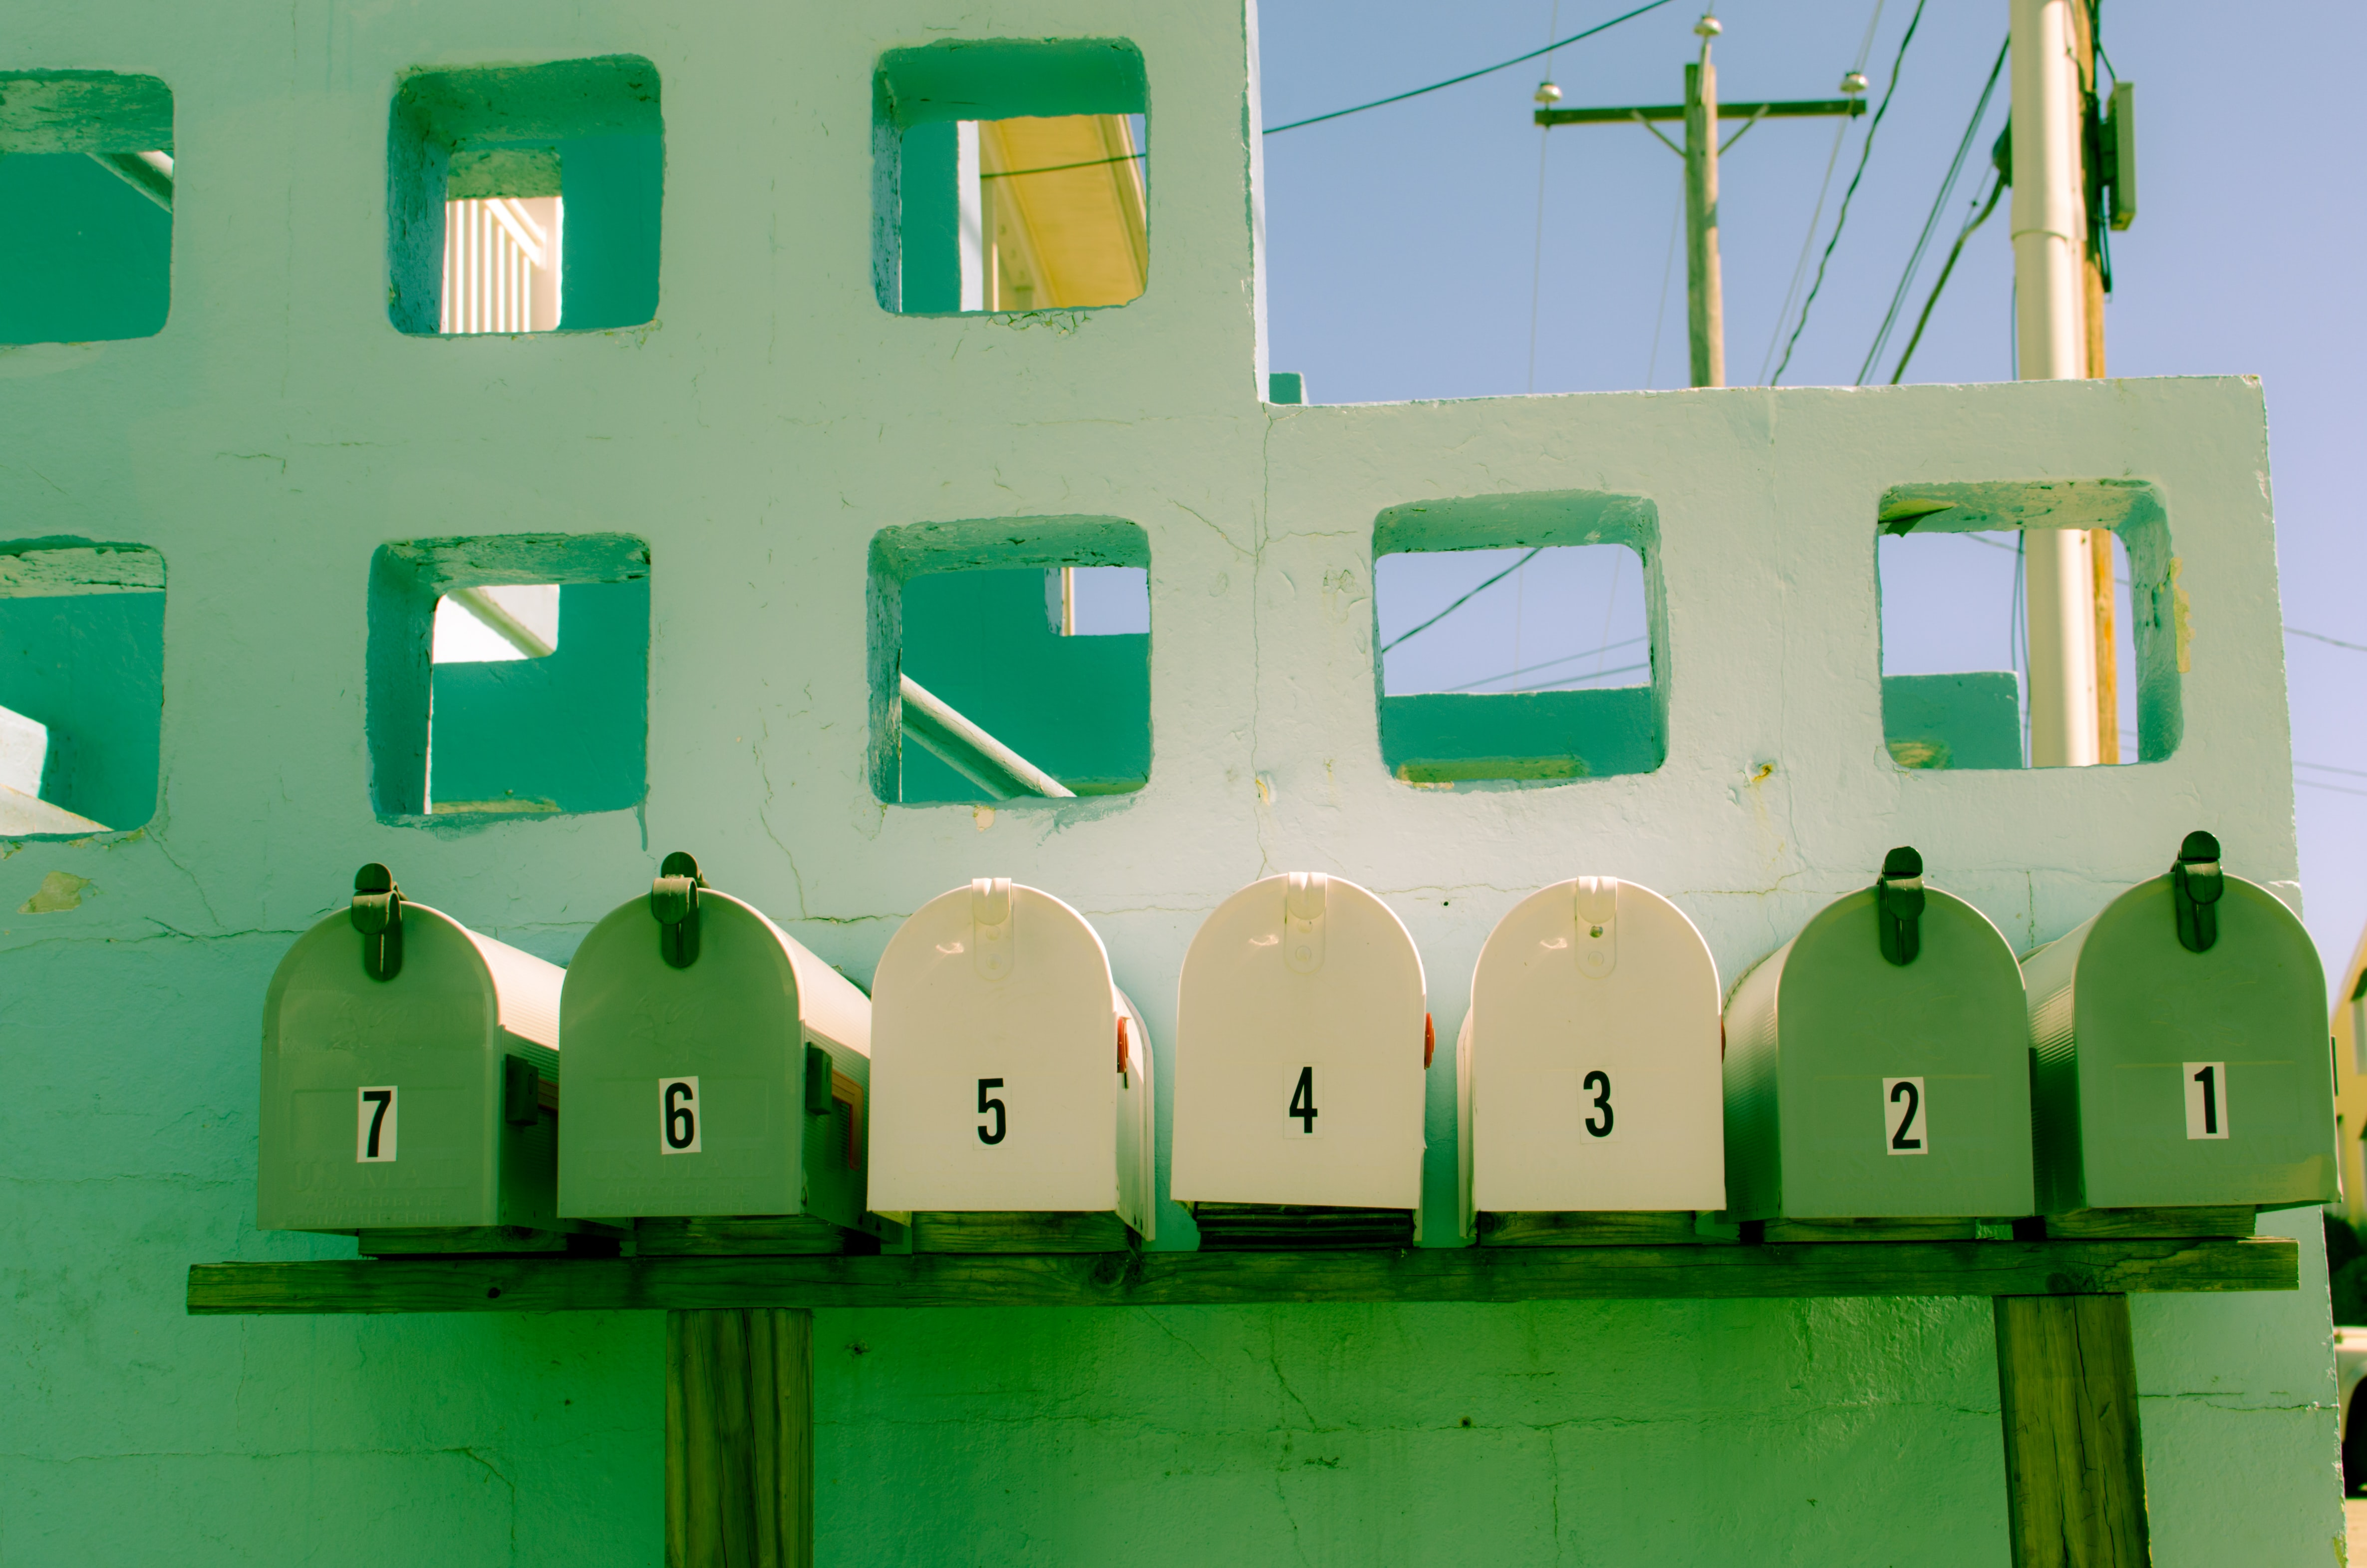 seven white and green mailboxes near white concrete wall